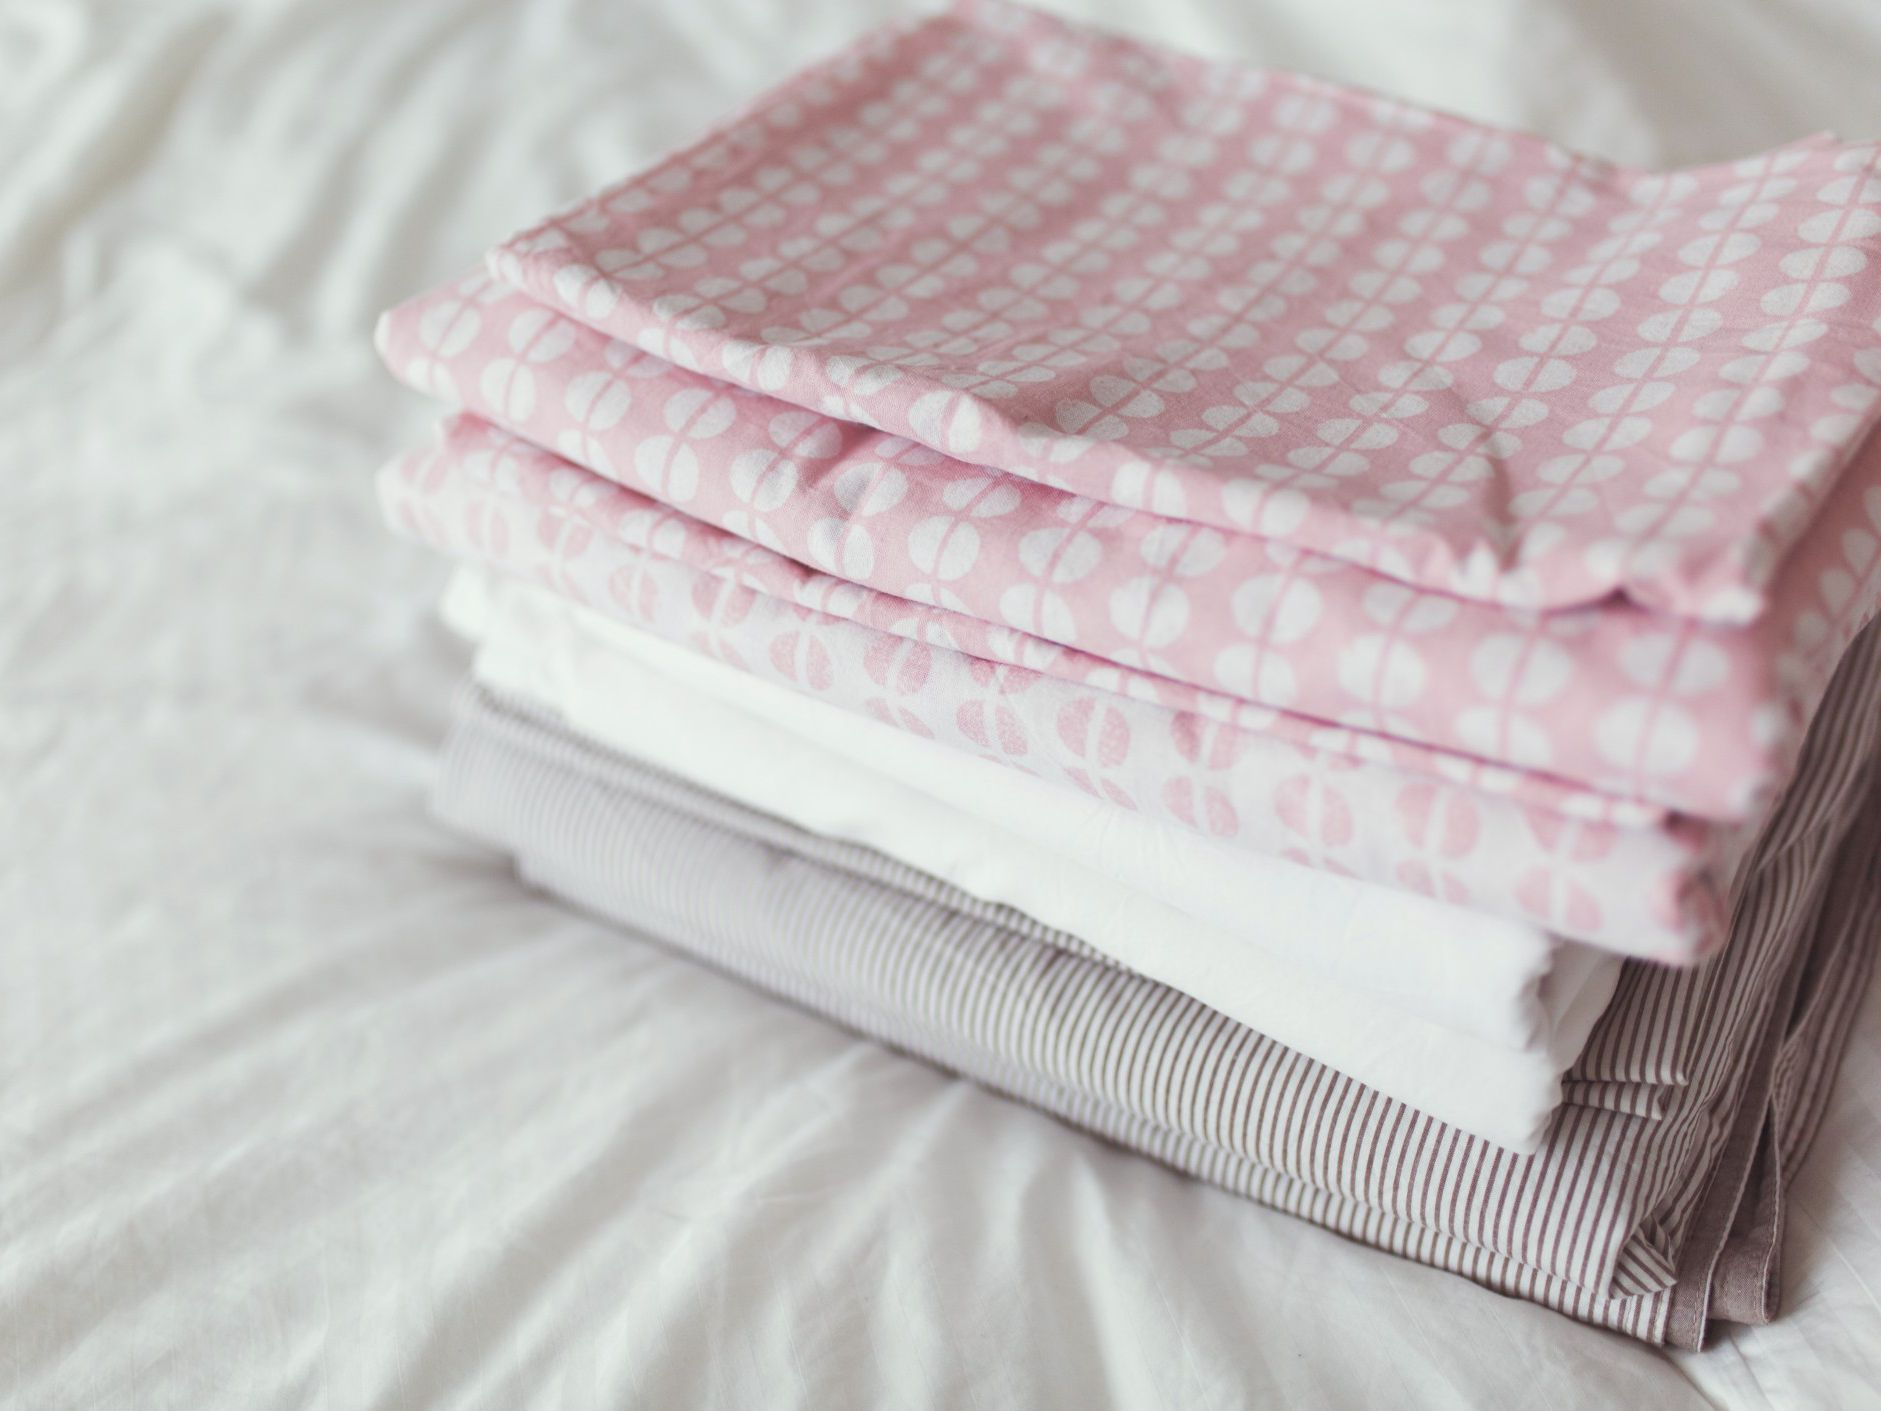 How To Properly Fold Your Clothes And Other Laundry